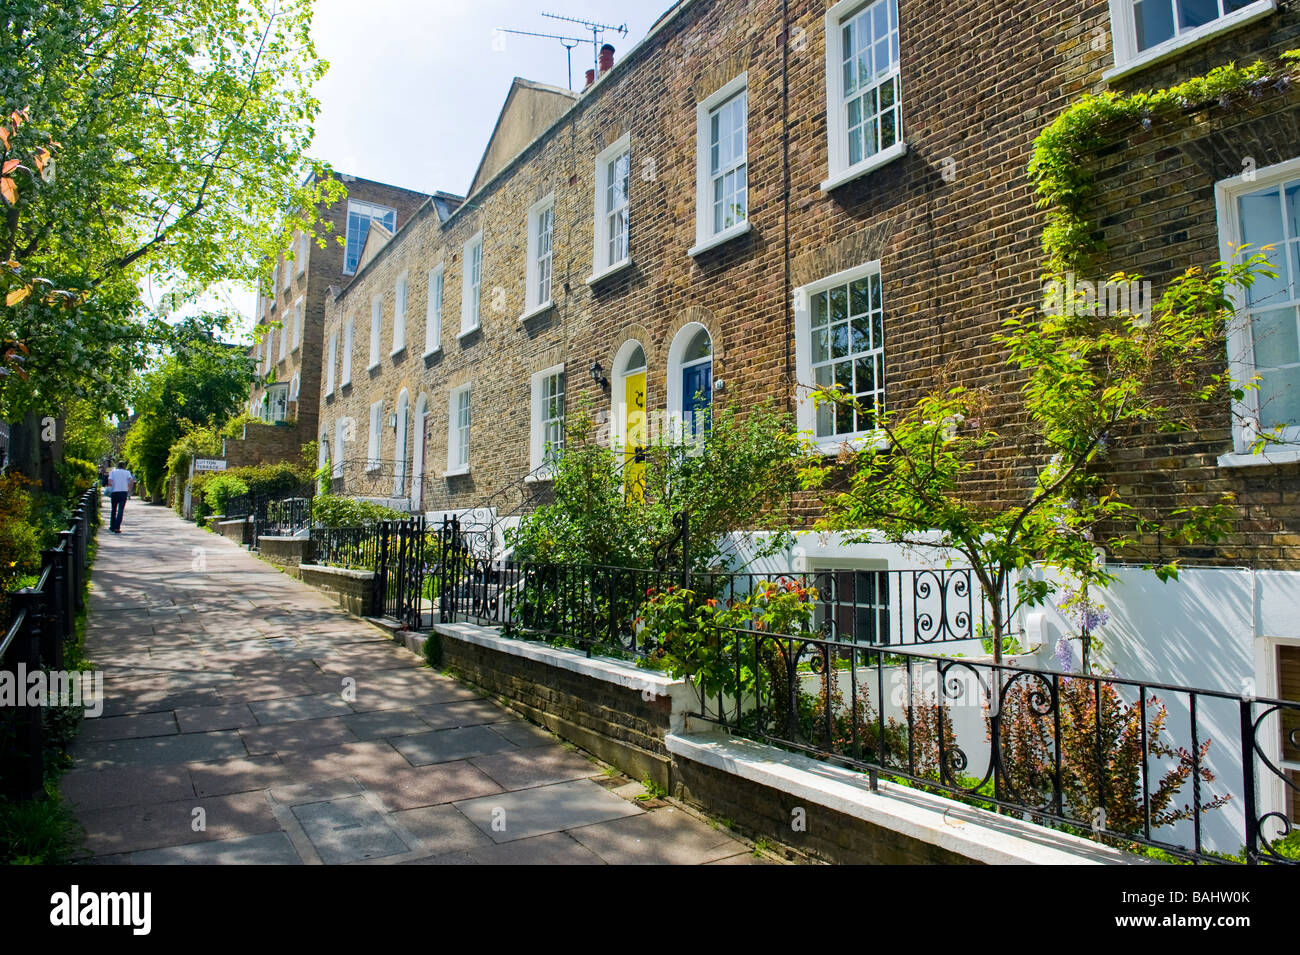 Spring in Hampstead Village , picturesque row of Georgian terraced cottages with sash windows & gardens in Flask - Stock Image